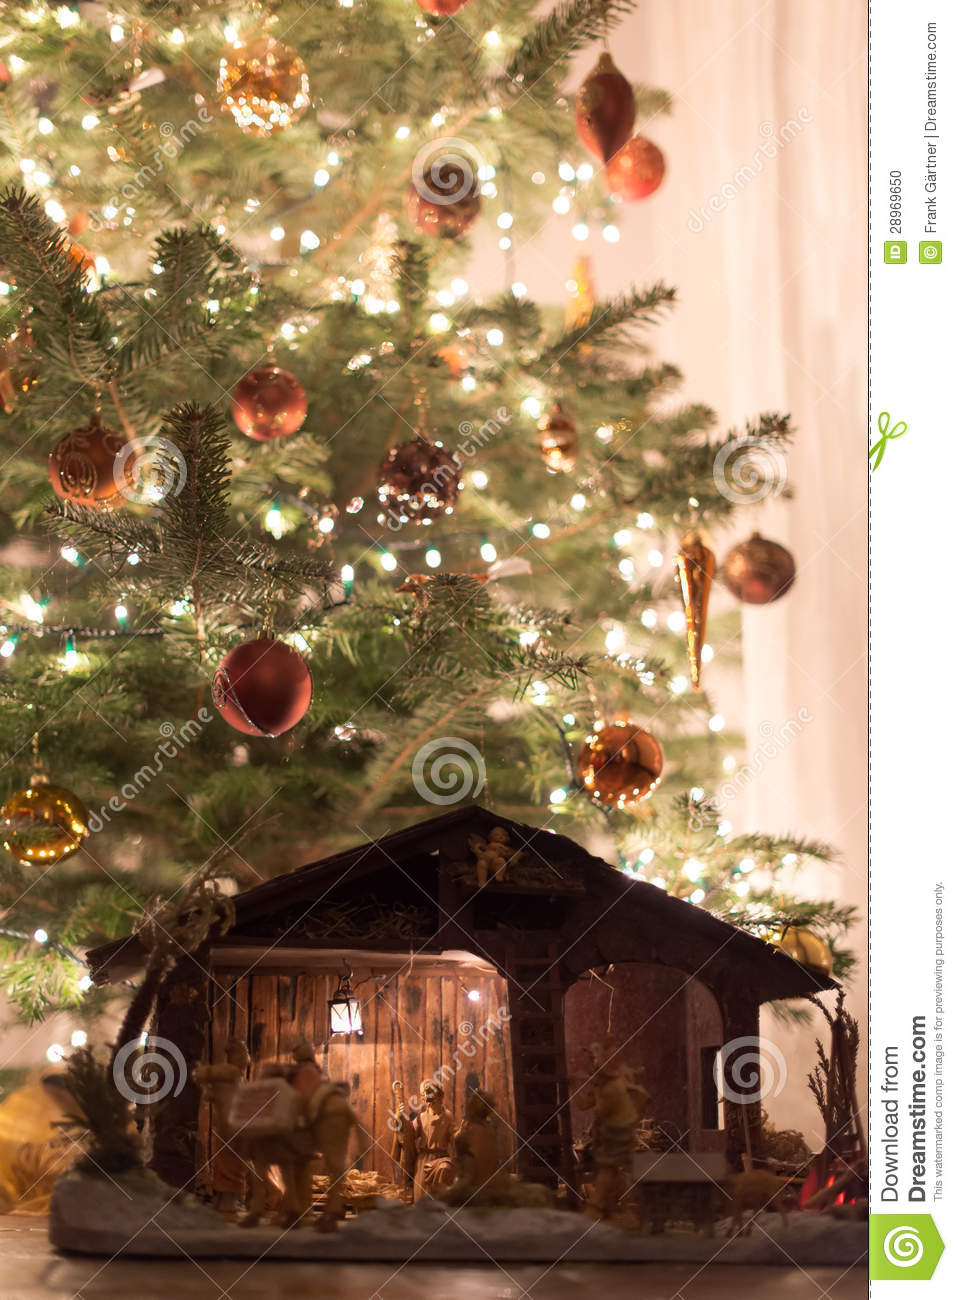 Christmas Tree With Crib Stock Photo Image 28969650